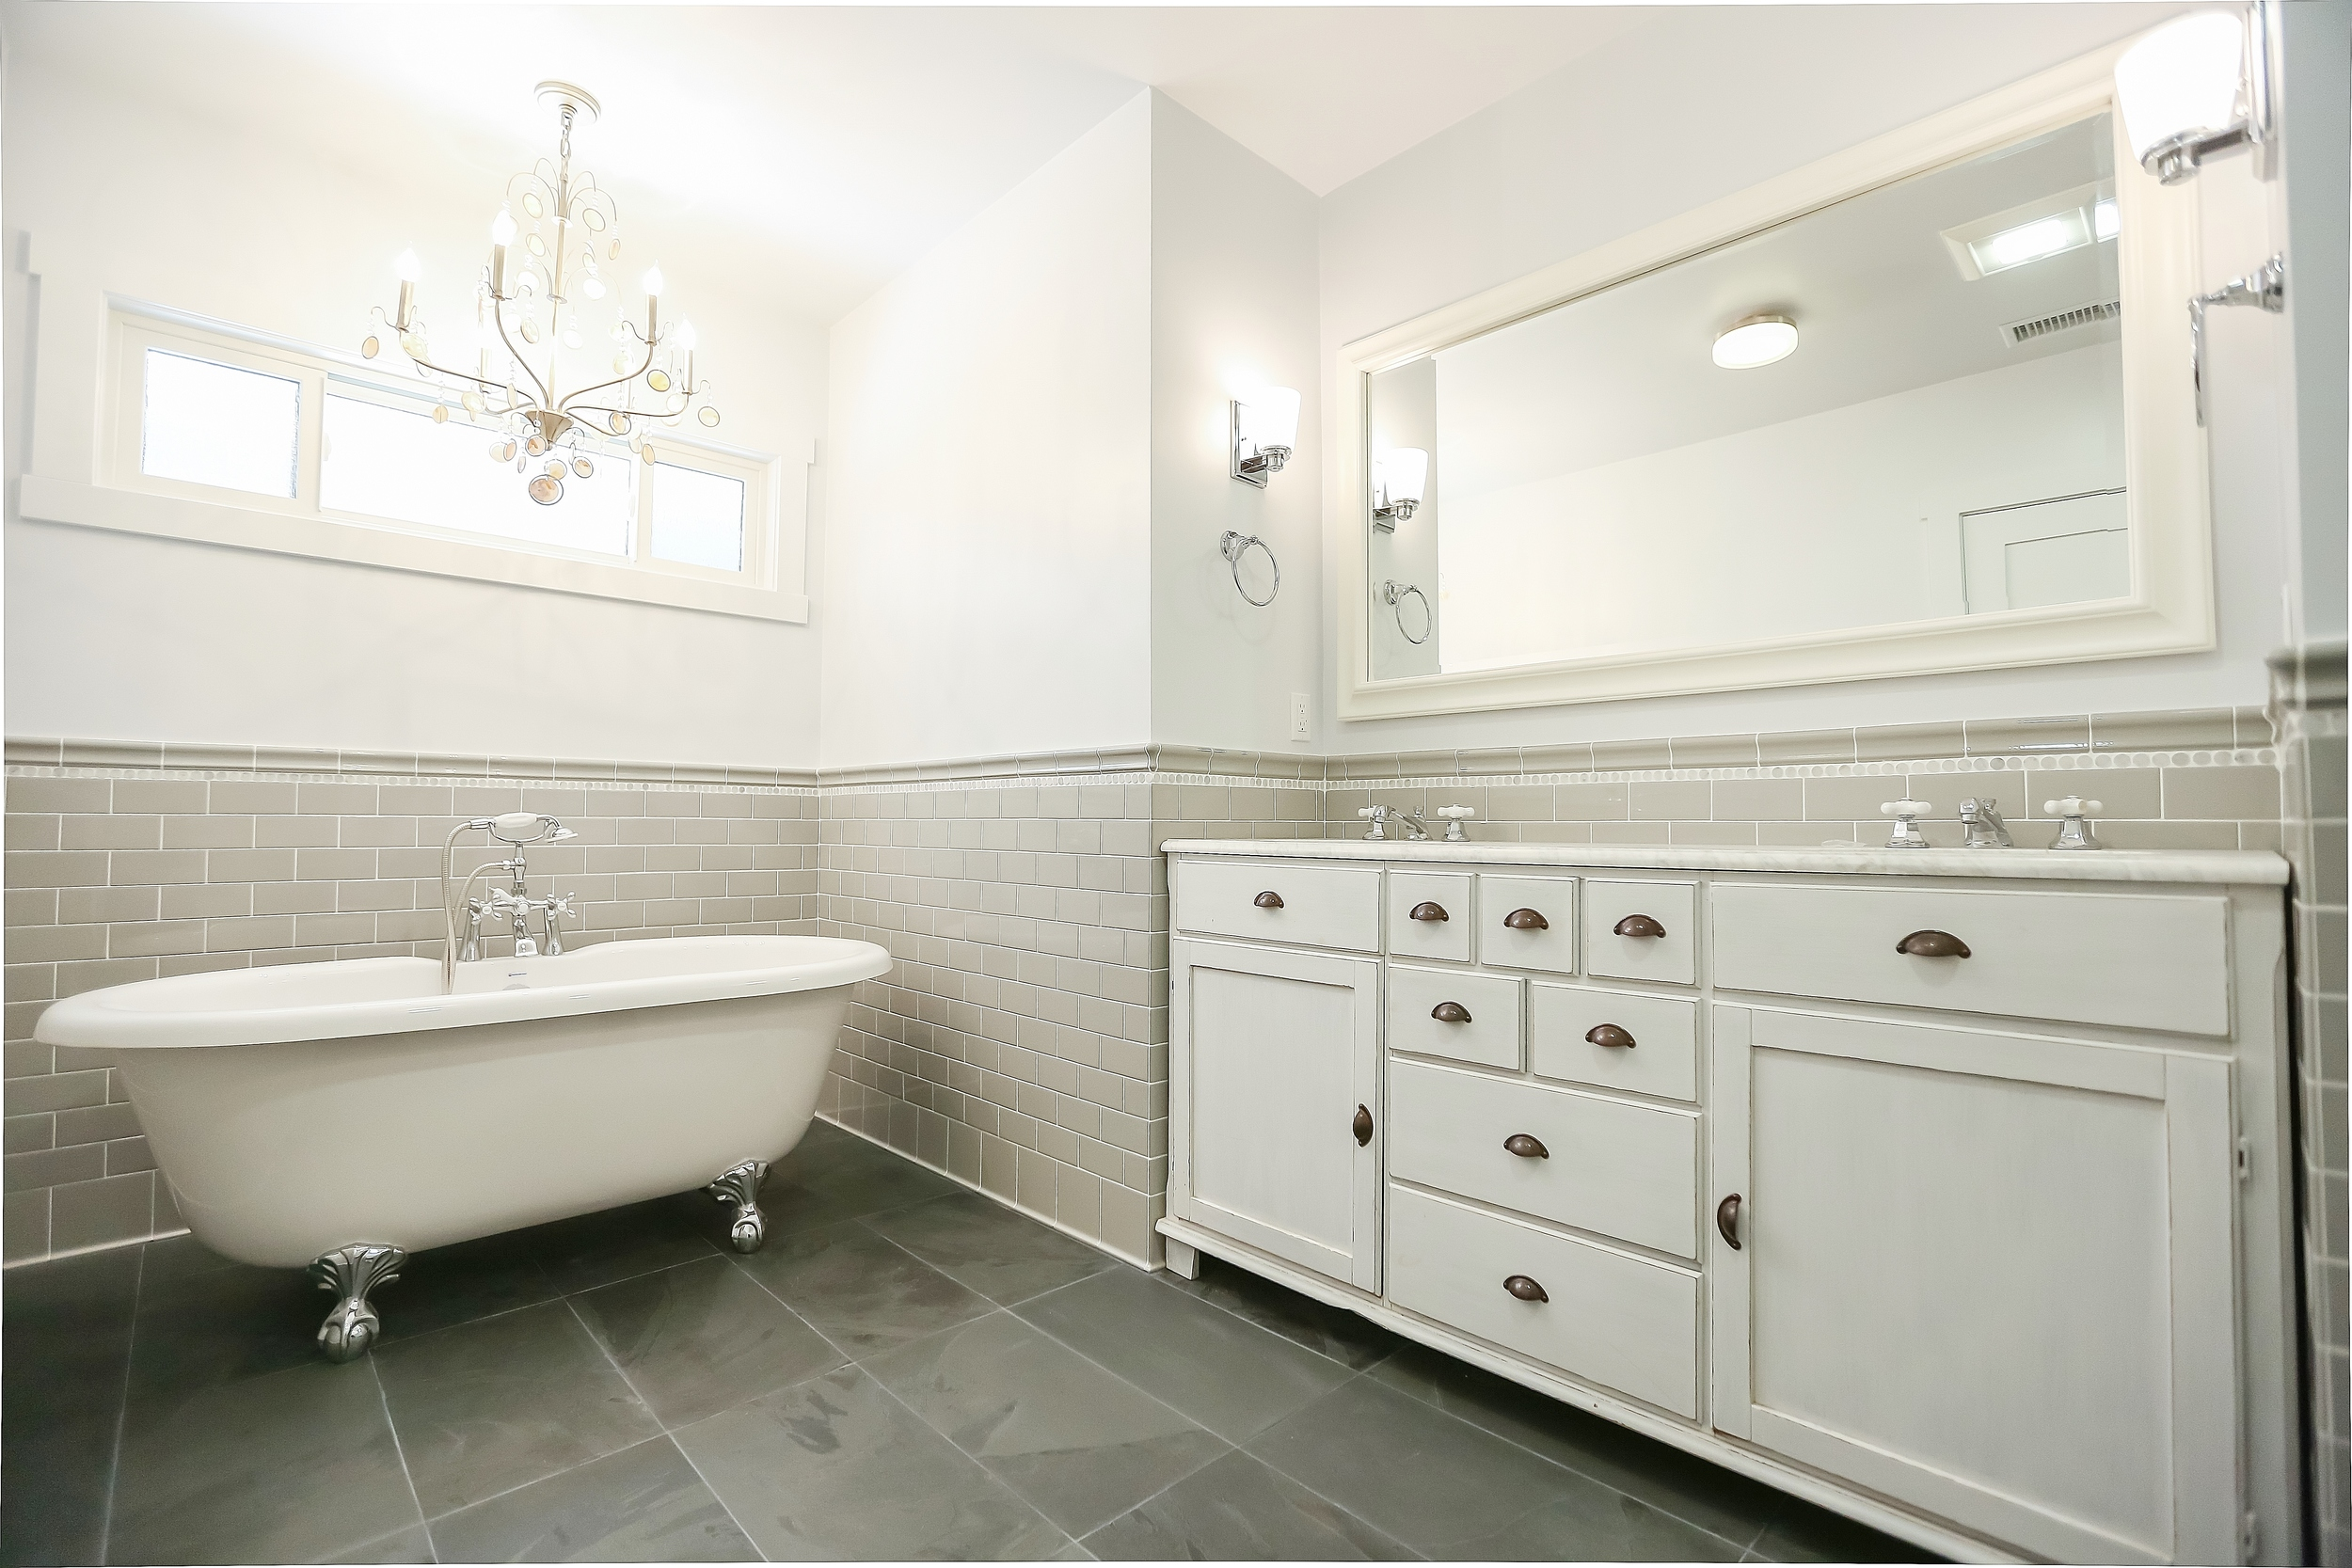 CANYON CREST - BATHROOM & KITCHEN REMODEL